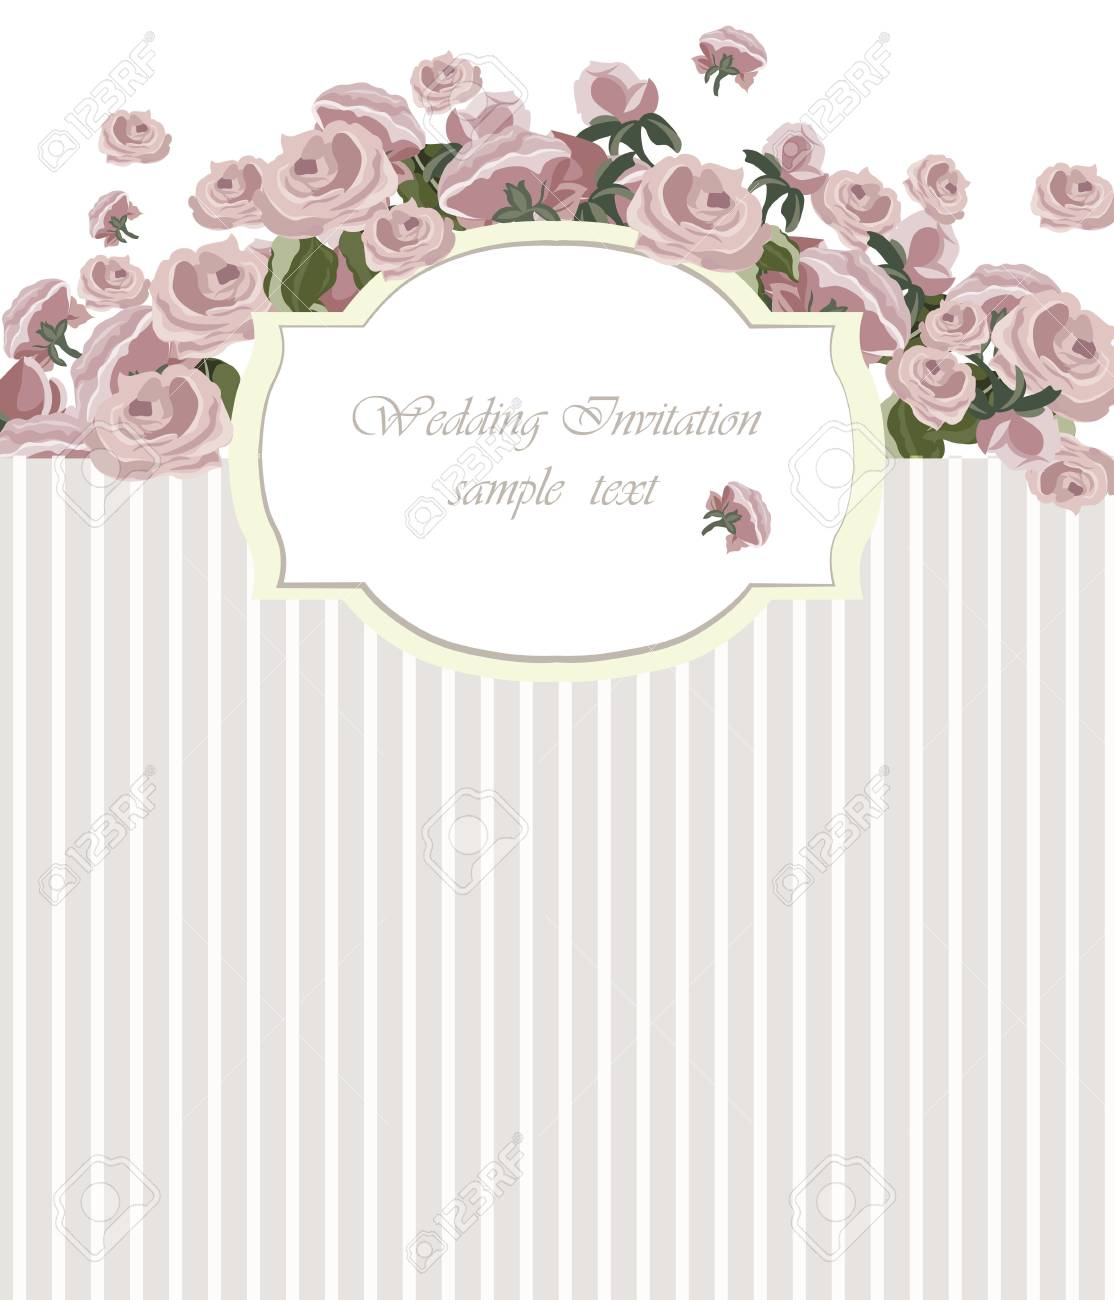 Vintage Invitation Card With Watercolor Flowers Background Spring